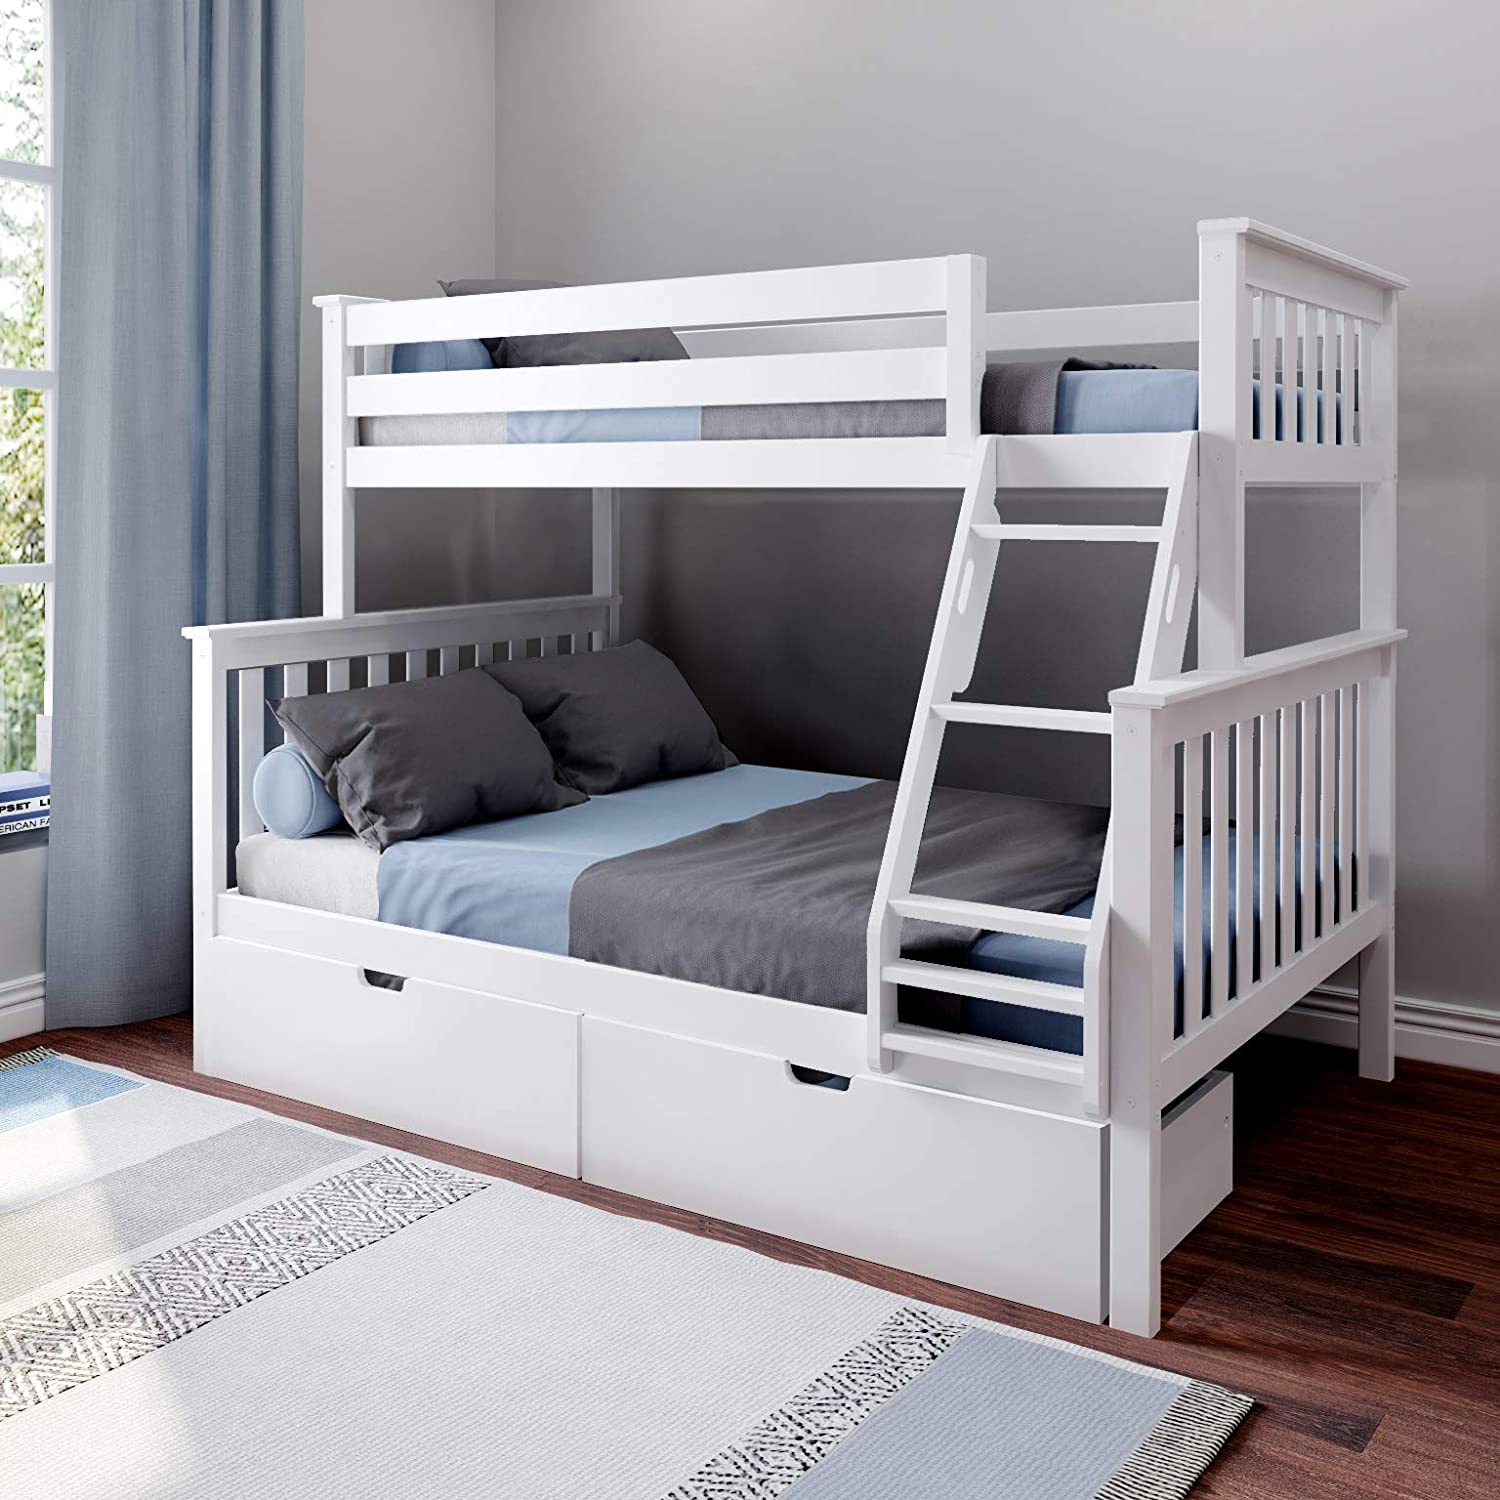 Max /& Lily Solid Wood Twin over Full Bunk Bed with Under Bed Storage Drawers Espresso